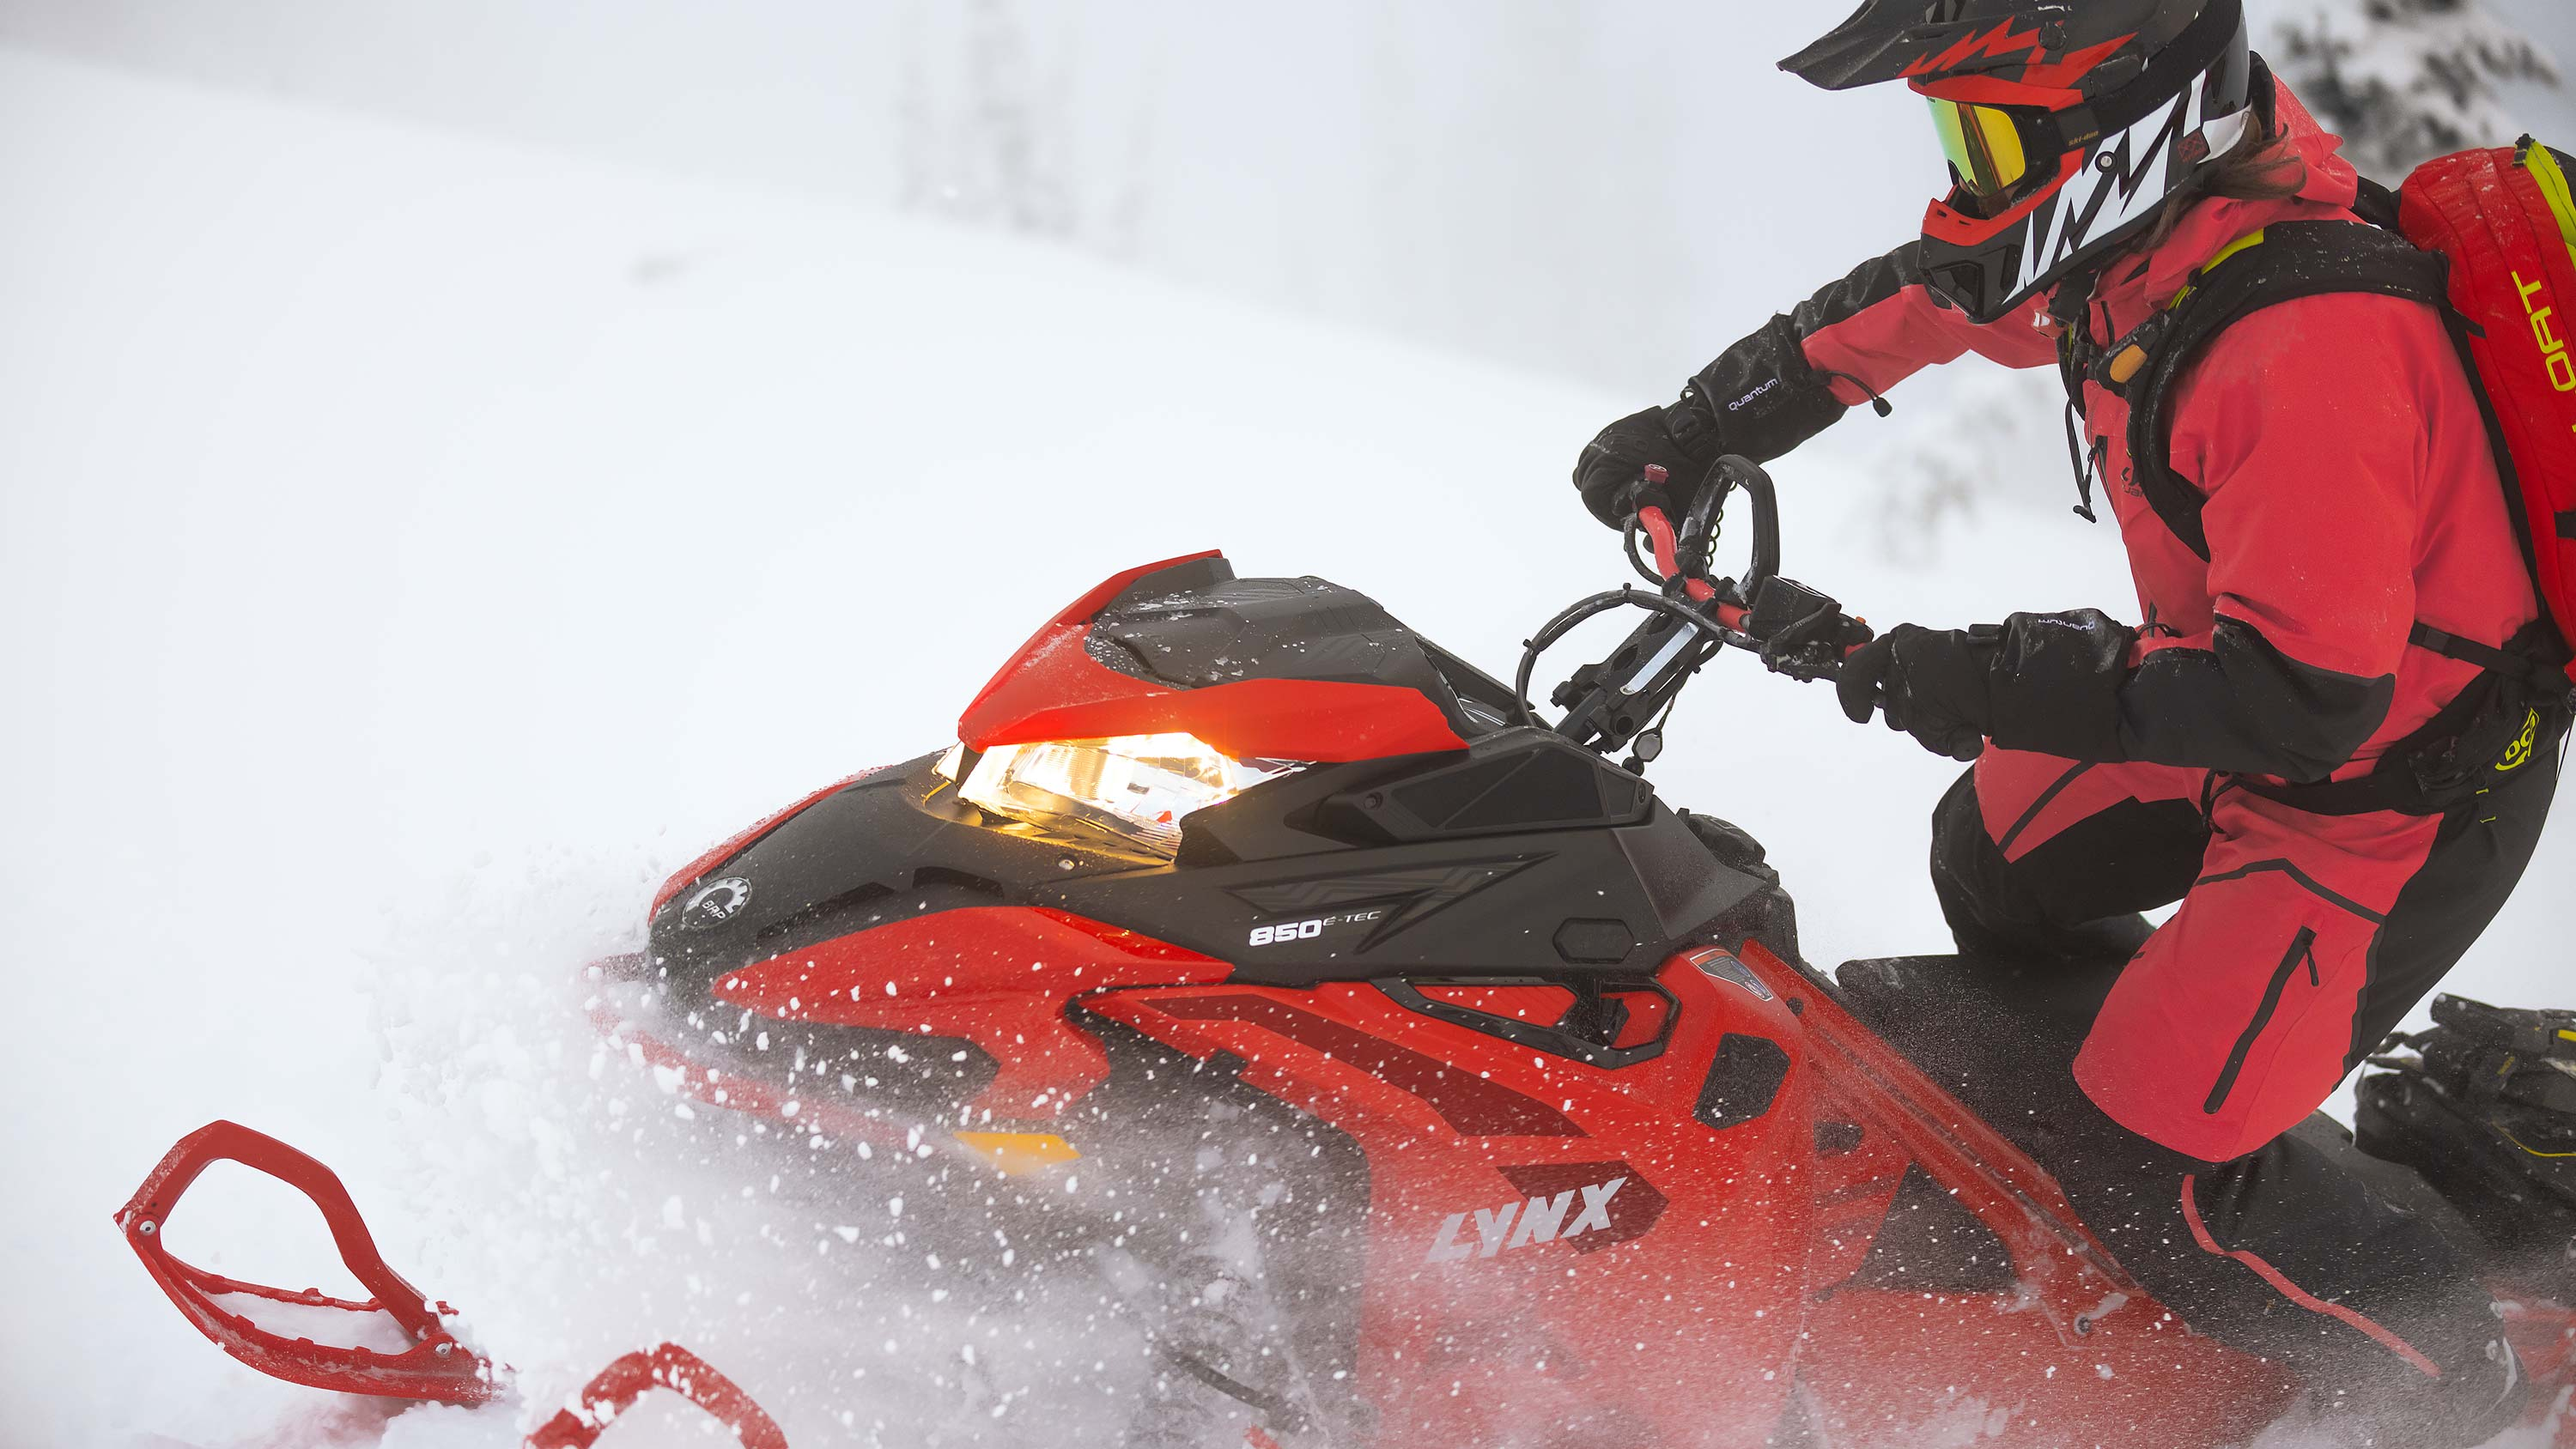 Closeup of Lynx BoonDocker snowmobile rider on terrain